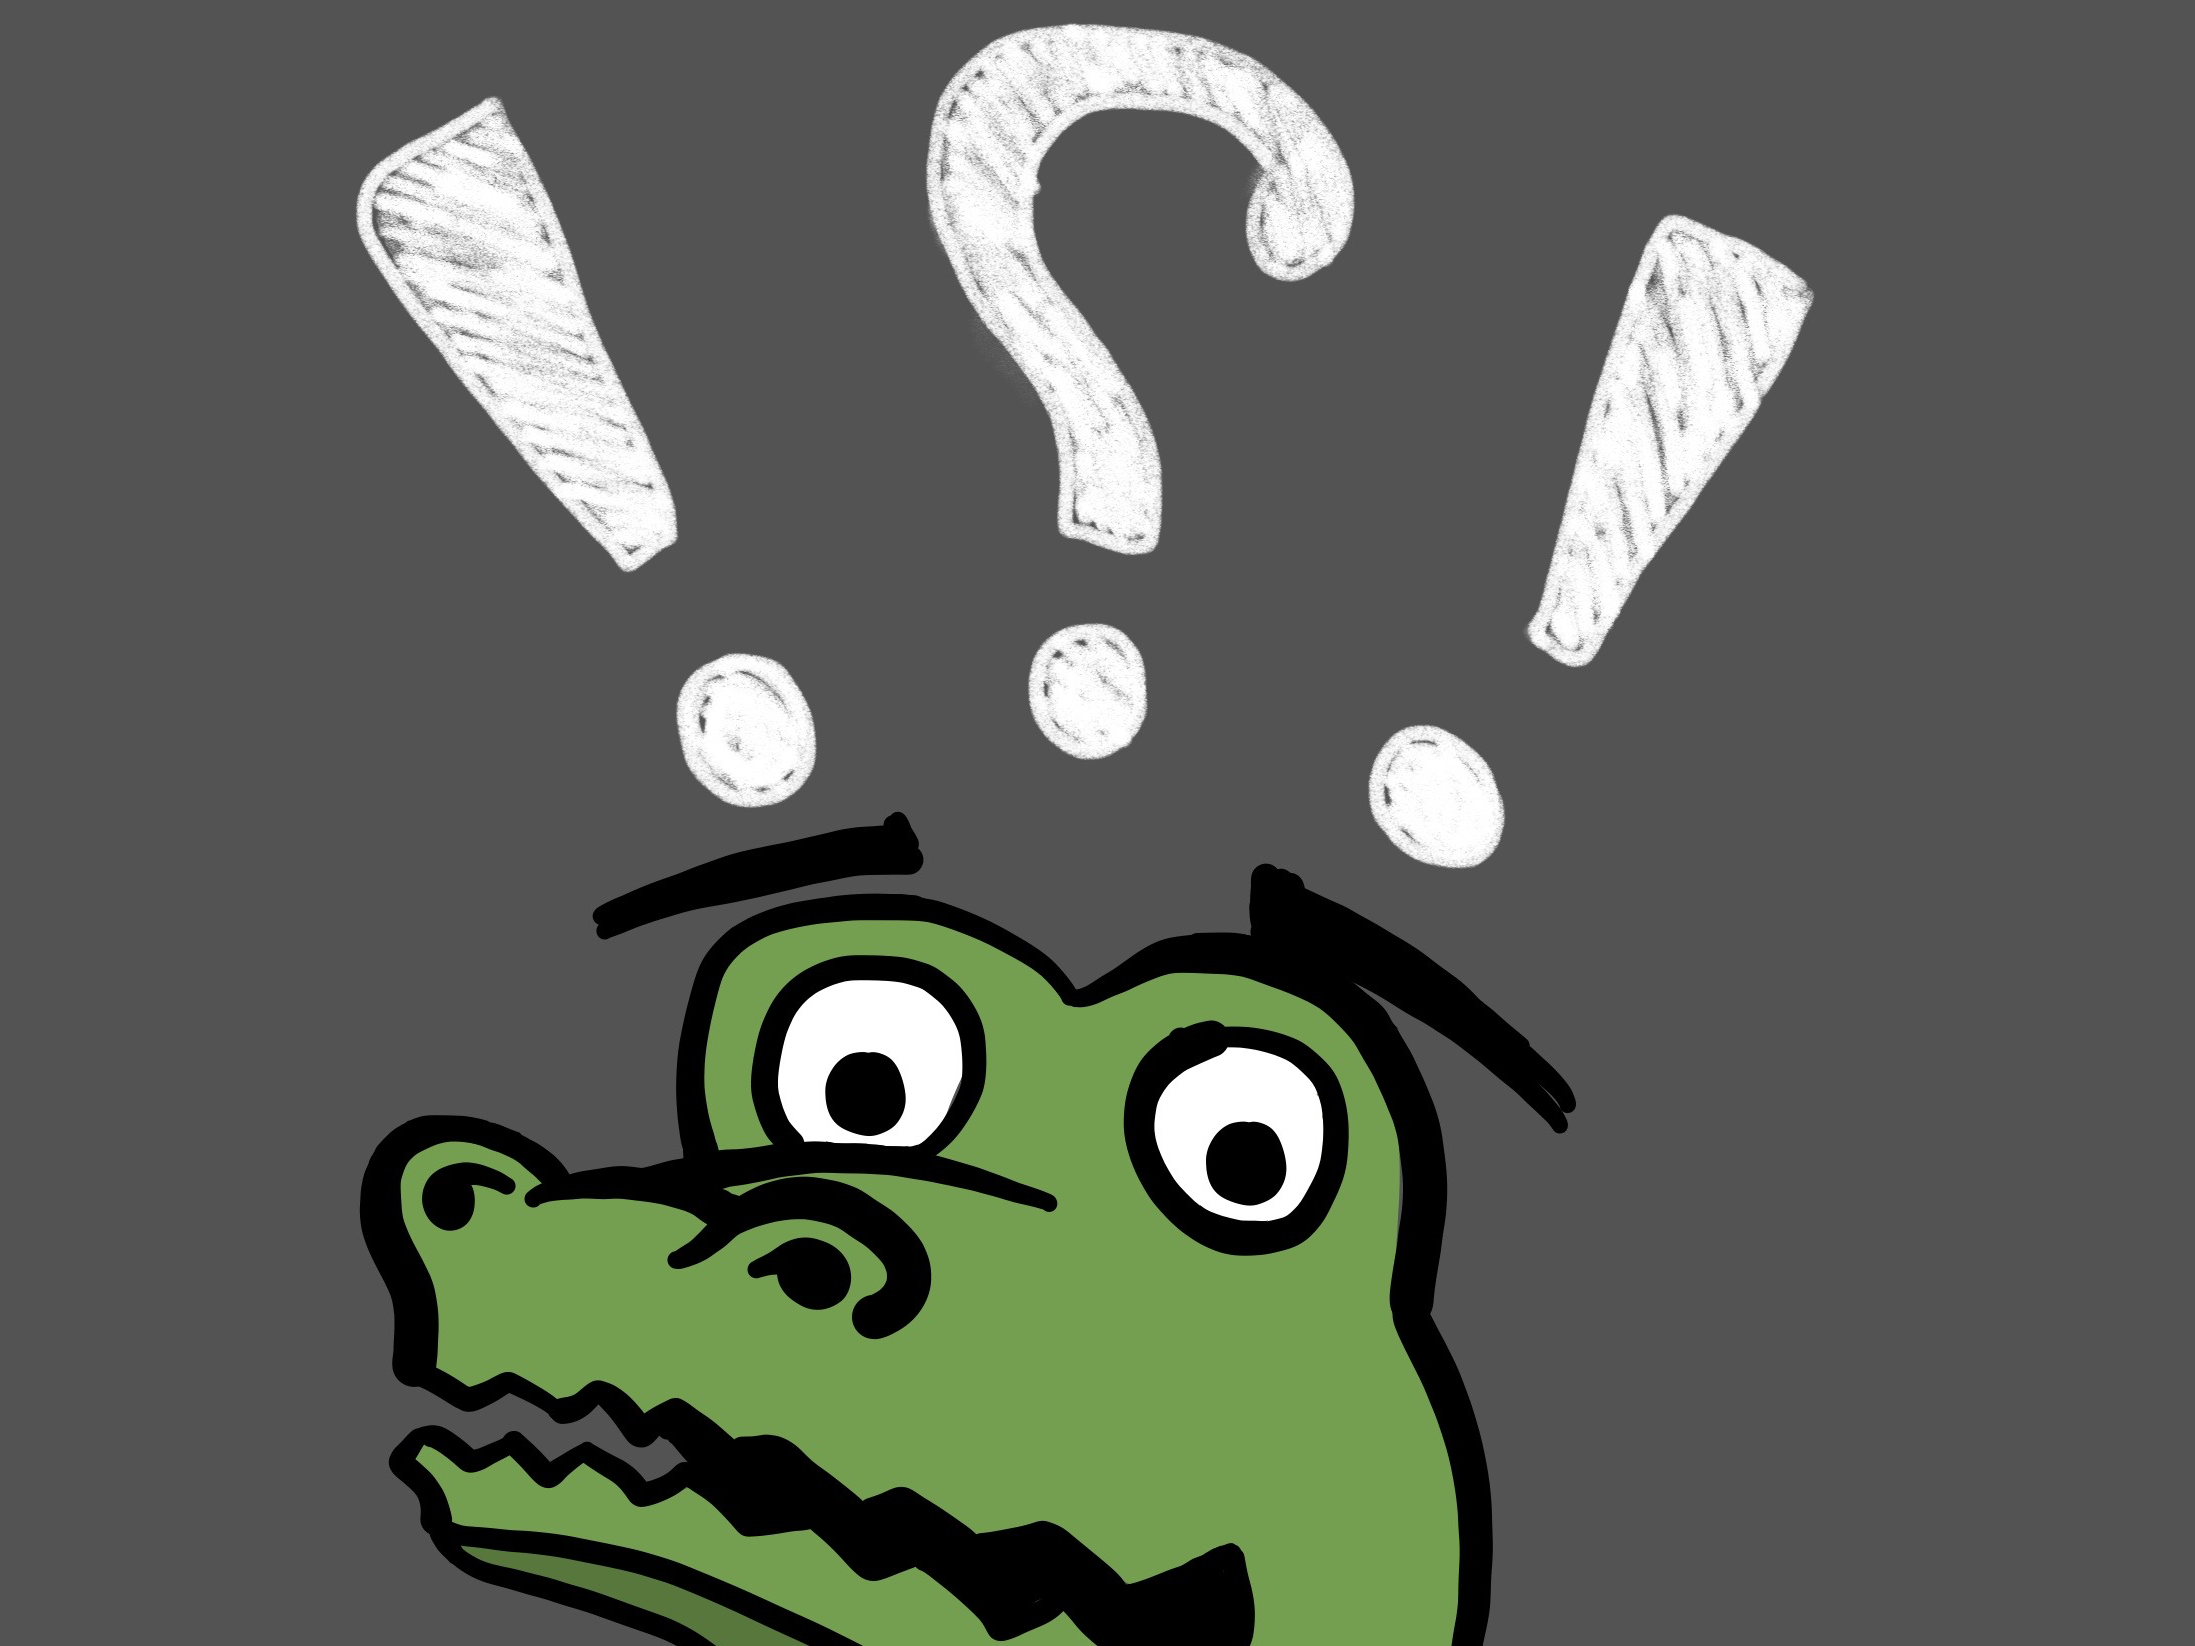 Cartoon gator head with a question mark and two exclamation points above his head